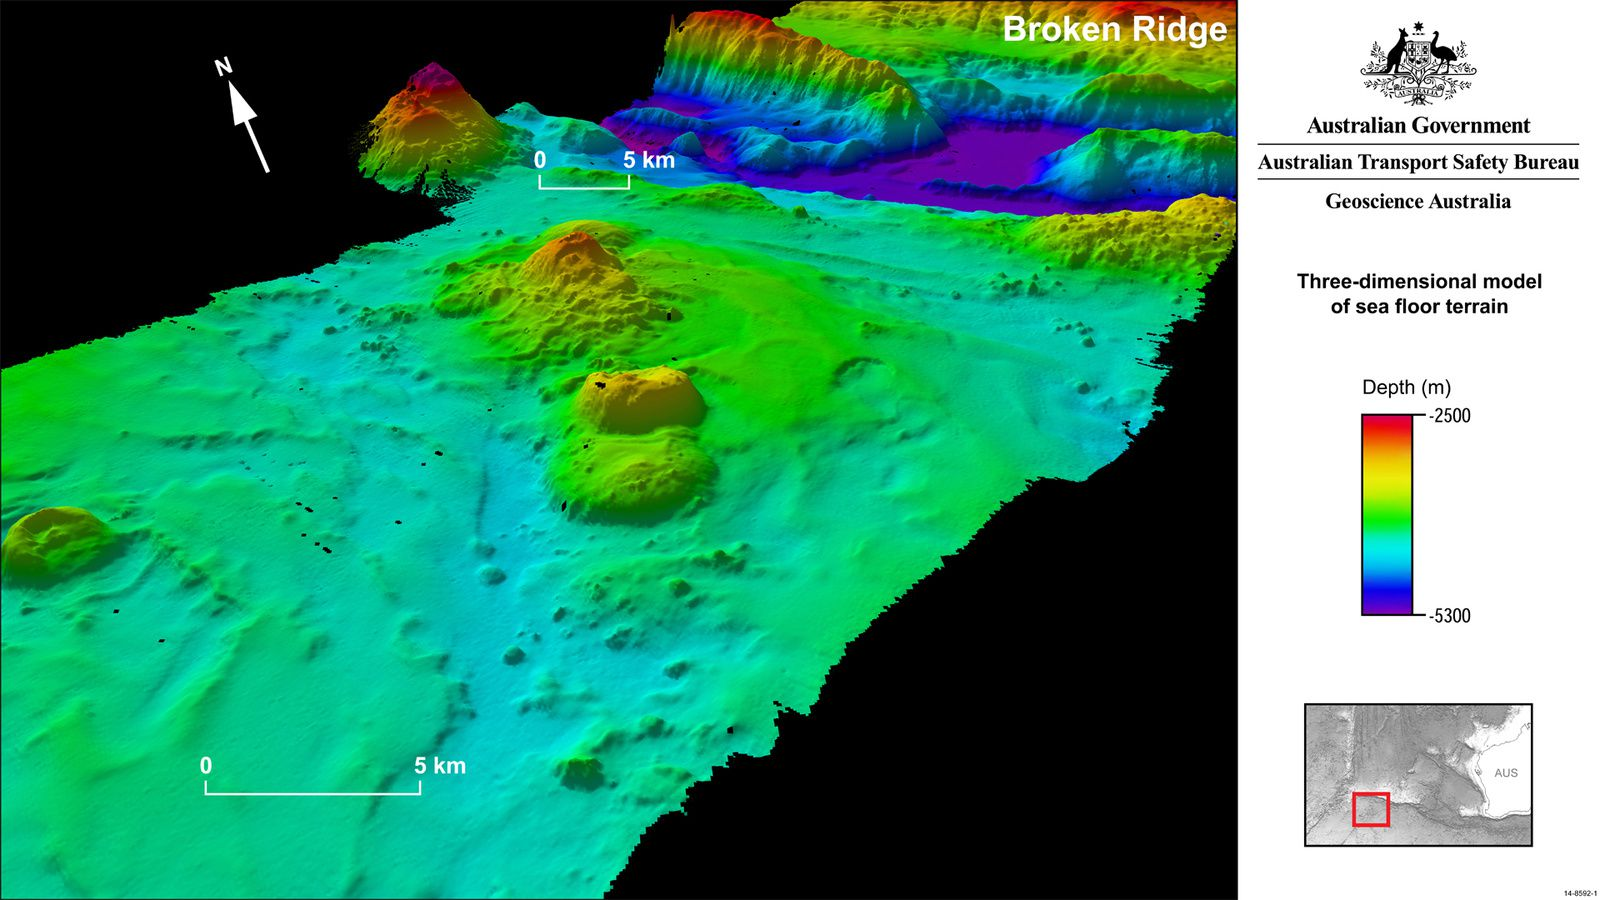 New seamounts discovered on Broken Ridge.